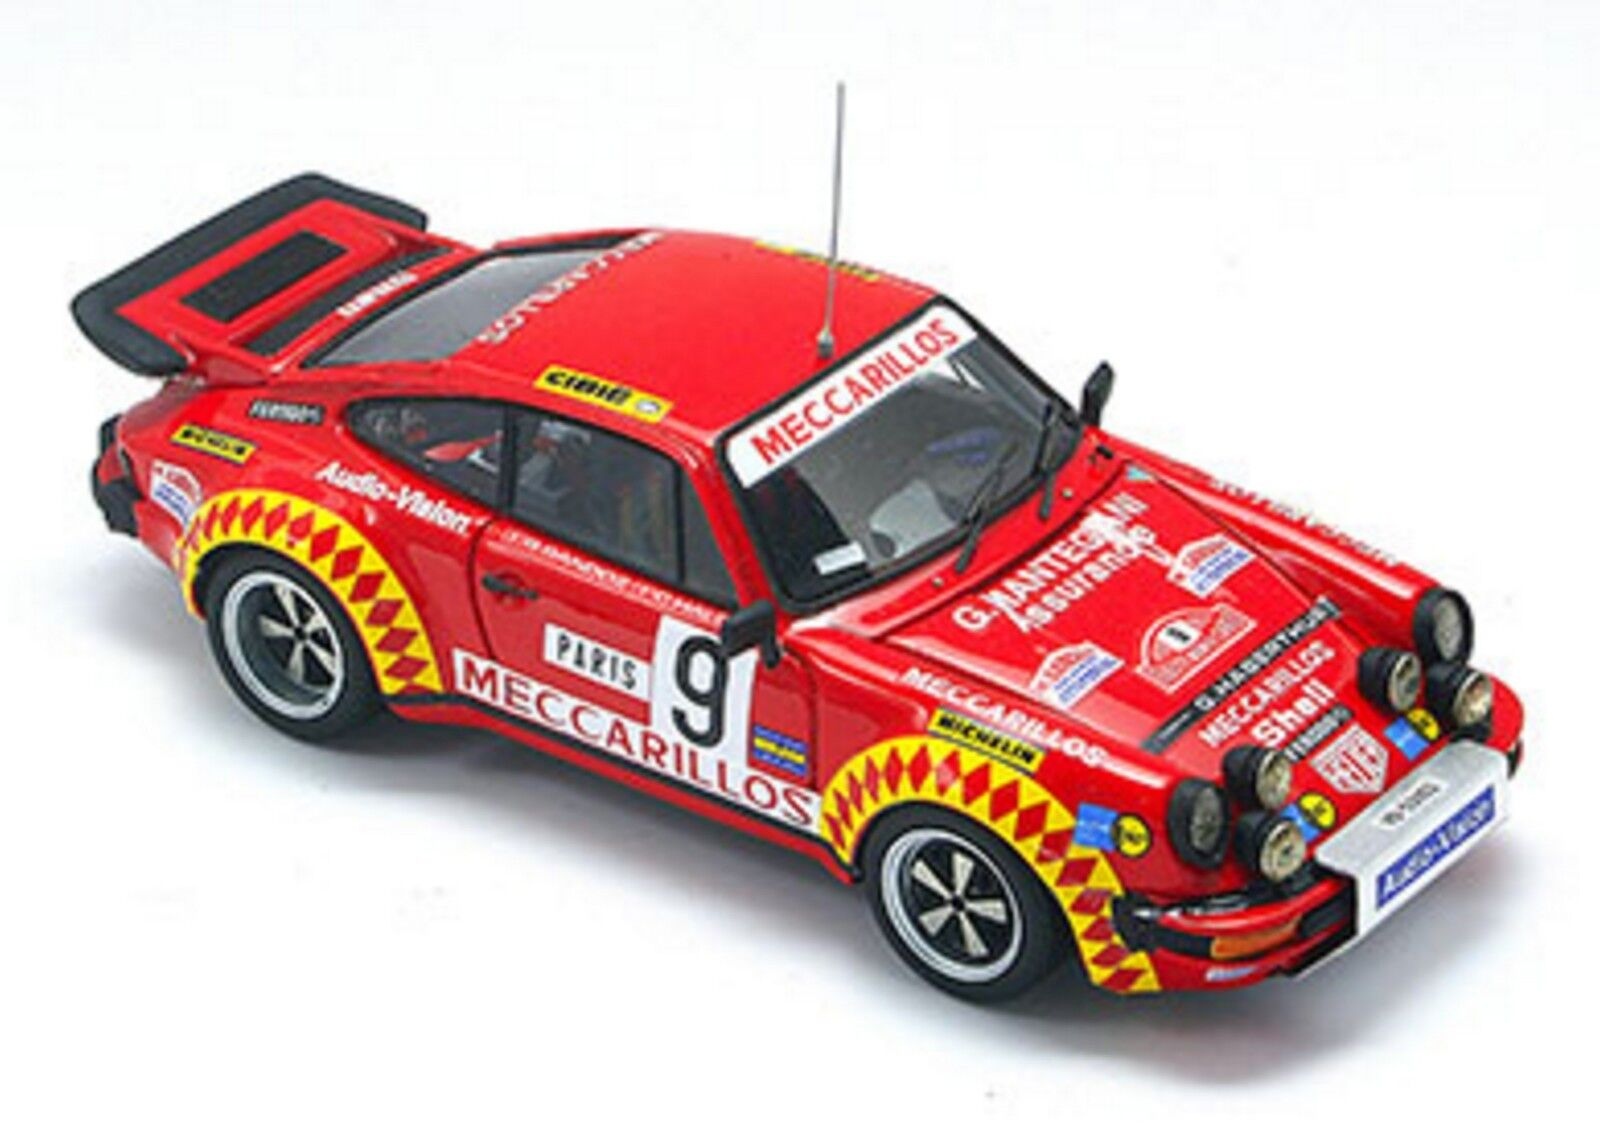 Kit Porsche 930 Turbo Gr.4 Rally Montecarlo 1978 –Arena modells kit 1 43